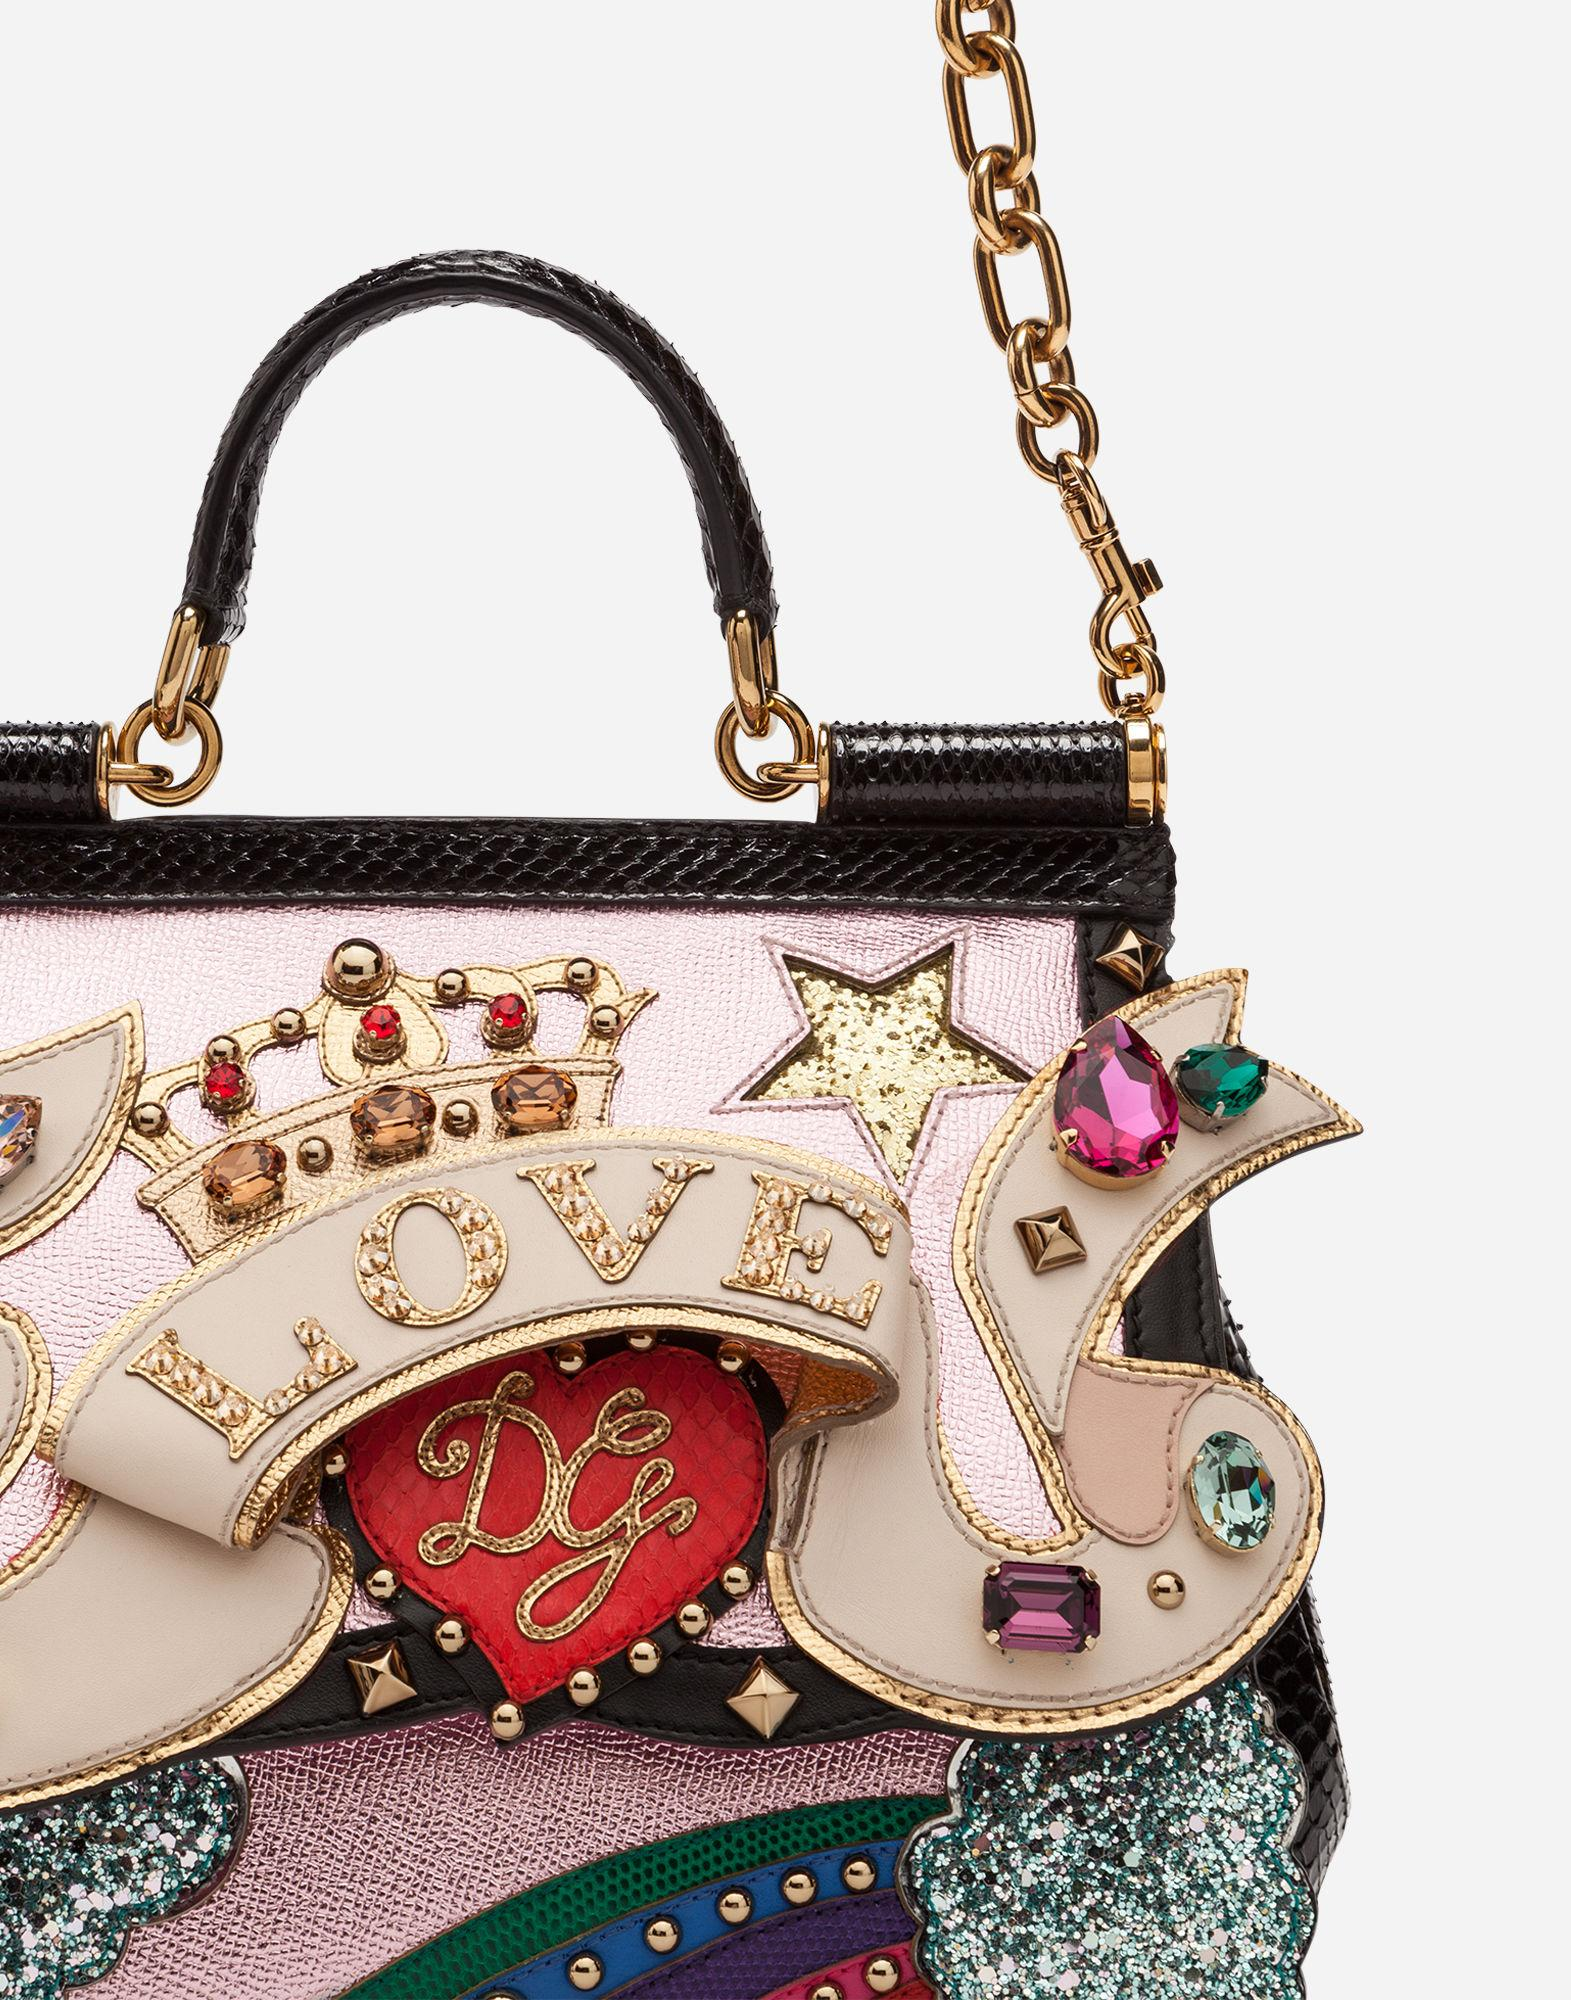 6f31b48d1cc9 Dolce   Gabbana Medium Sicily Bag In A Mix Of Materials With 3D Patch And  Embroideries